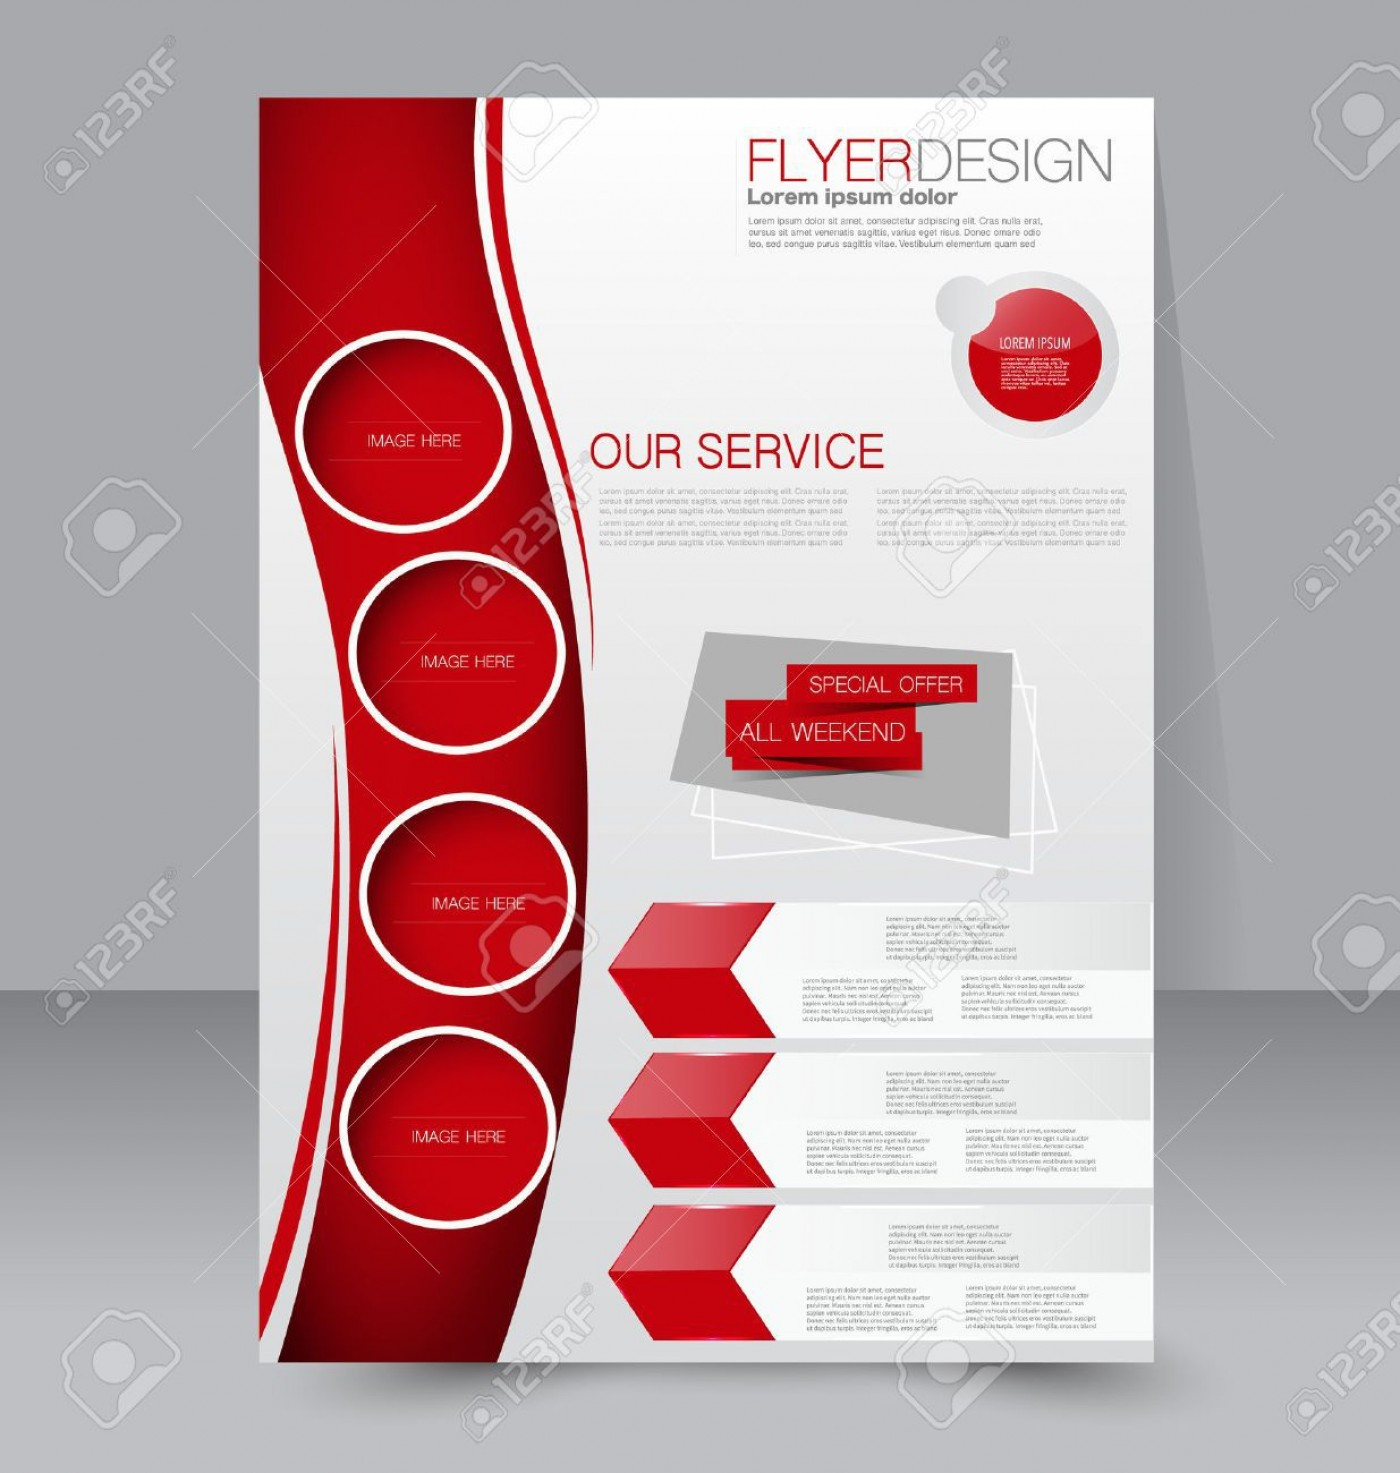 003 Magnificent Free Editable Flyer Template Image  Busines Fundraising1400